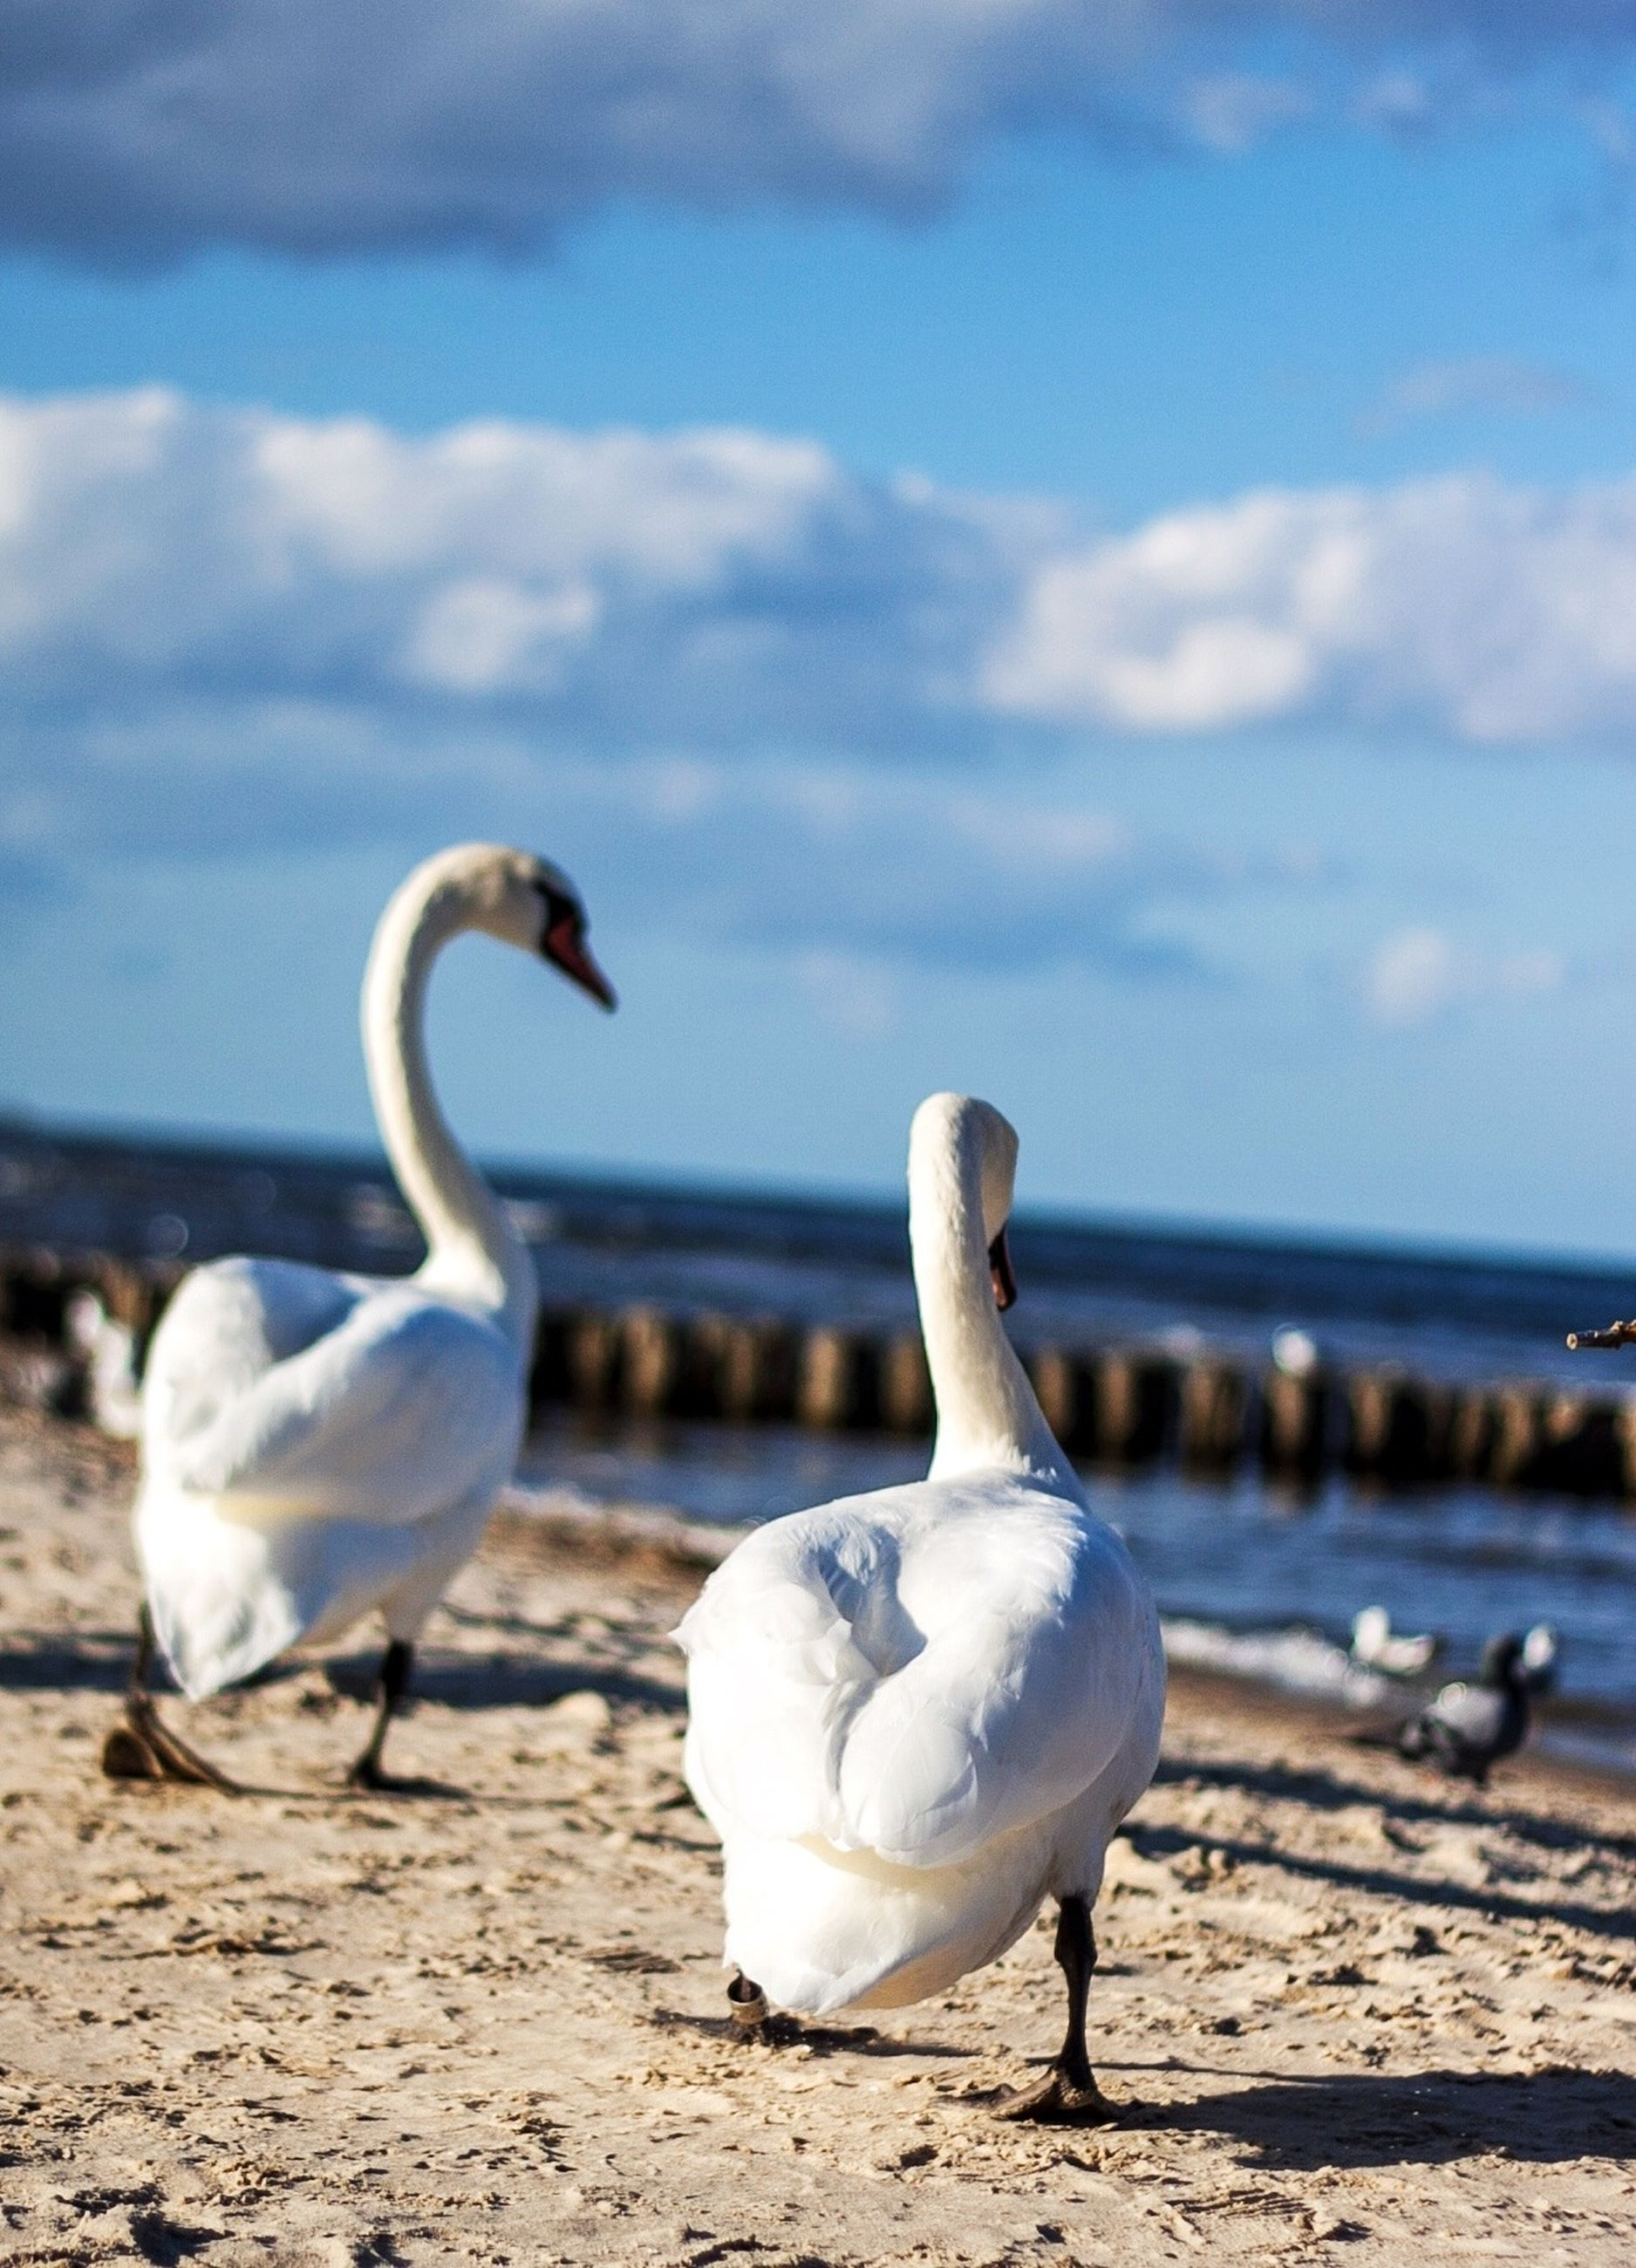 bird, animal themes, animals in the wild, beach, seagull, wildlife, water, sea, shore, sand, sky, nature, swan, white color, sea bird, beauty in nature, day, horizon over water, zoology, side view